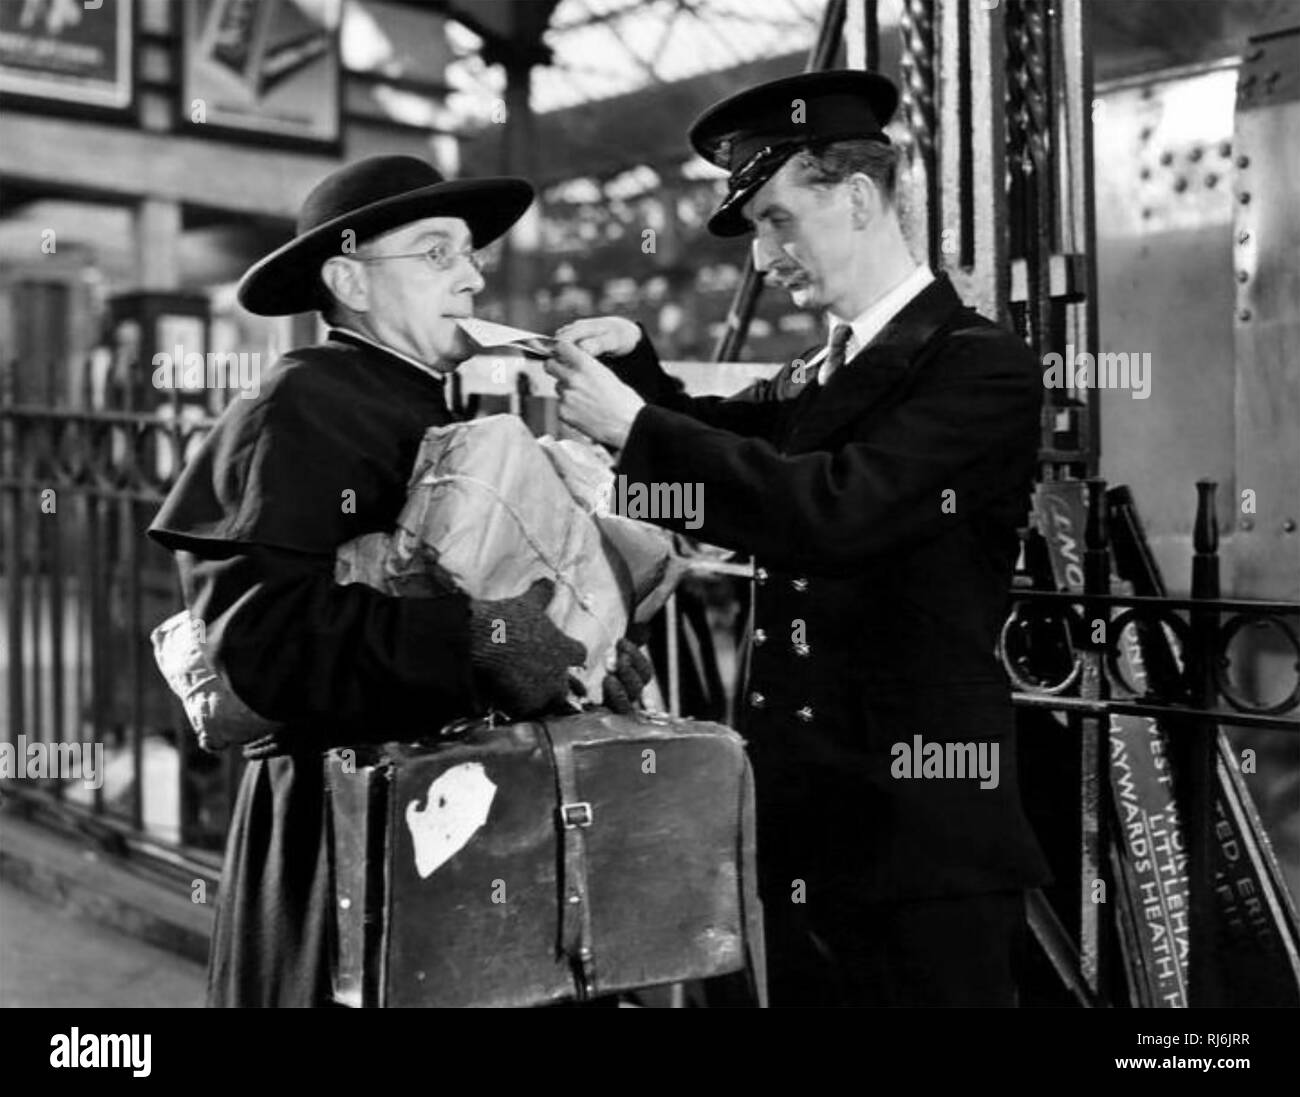 FATHER BROWN DETECTIVE 1954 film with Alec Guinness at left - Stock Image